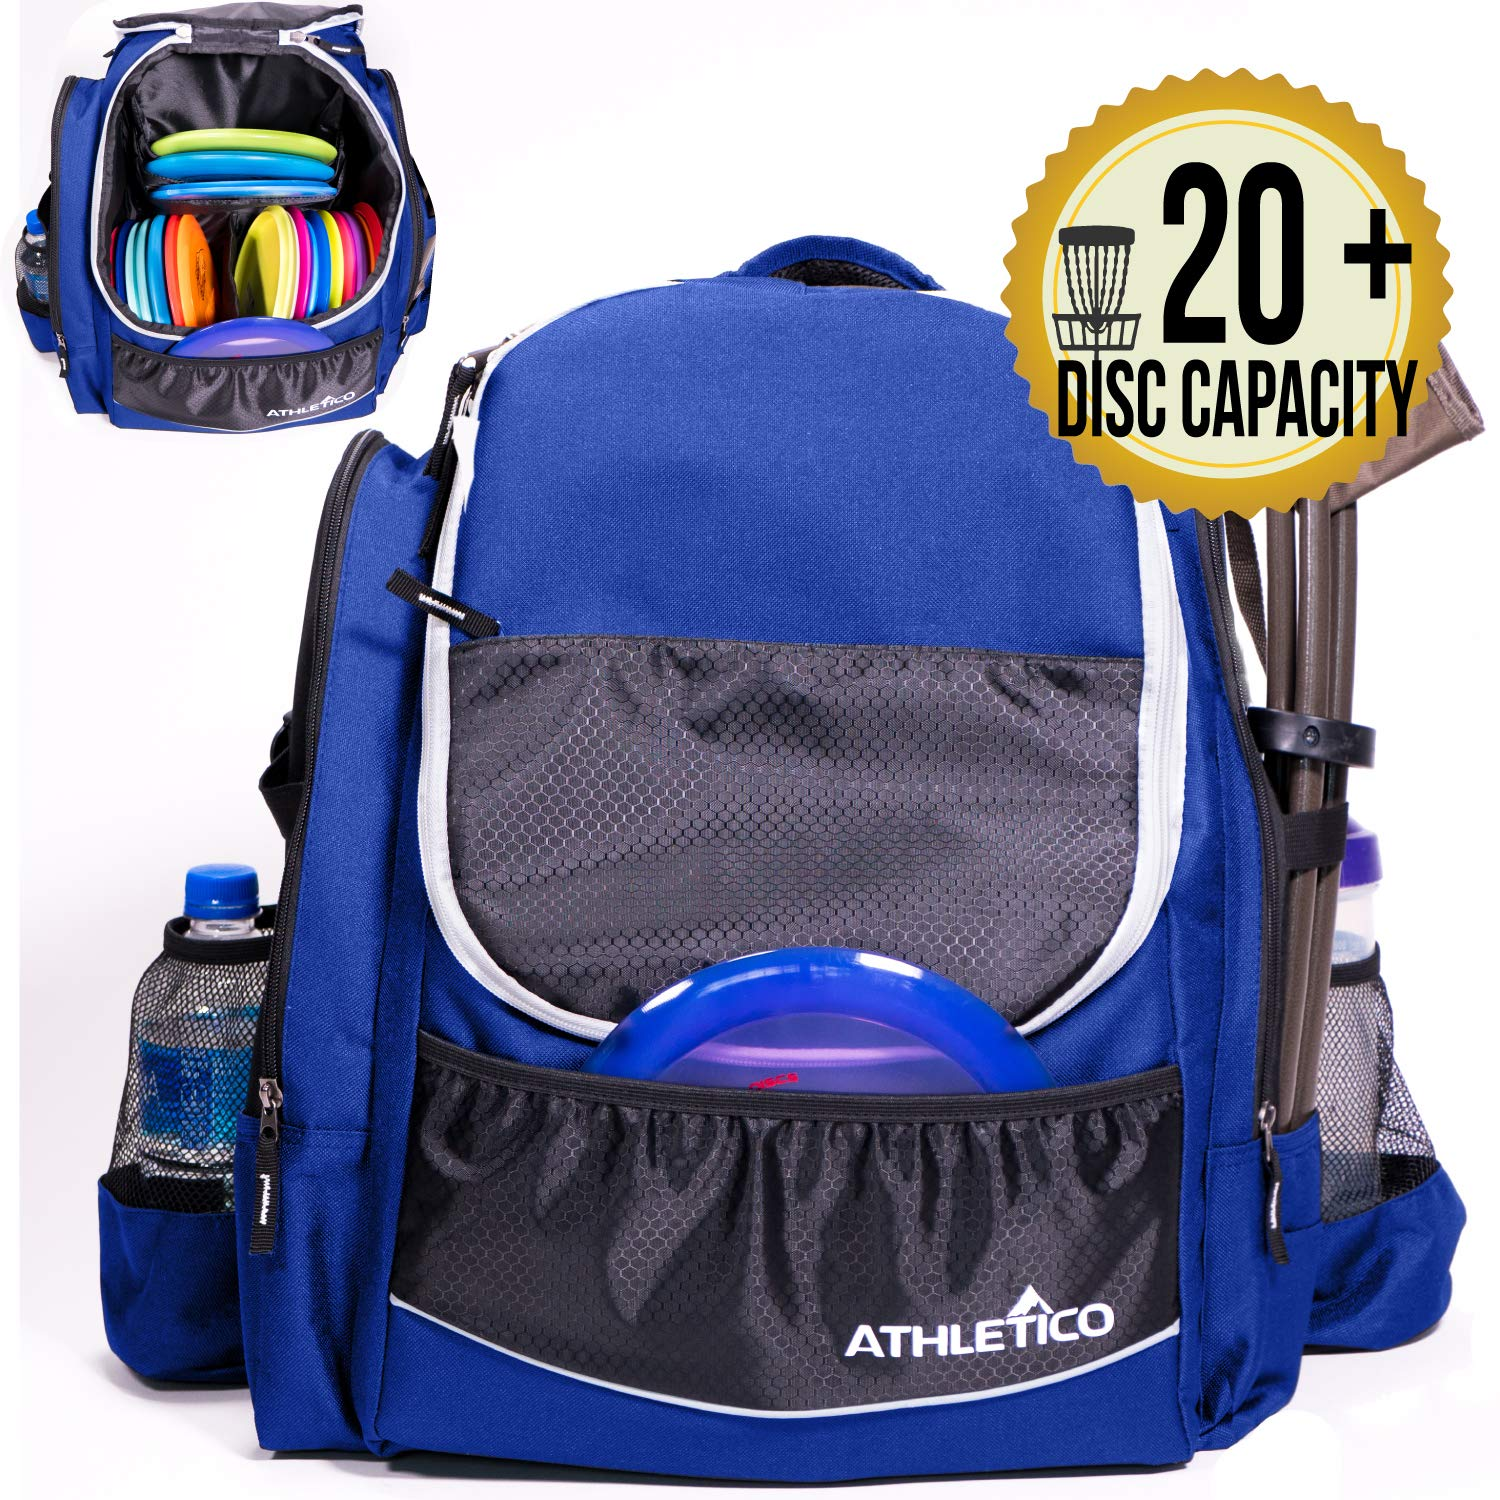 Athletico Power Shot Disc Golf Backpack | 20+ Disc Capacity | Pro or Beginner Disc Golf Bag | Unisex Design (Blue) by Athletico